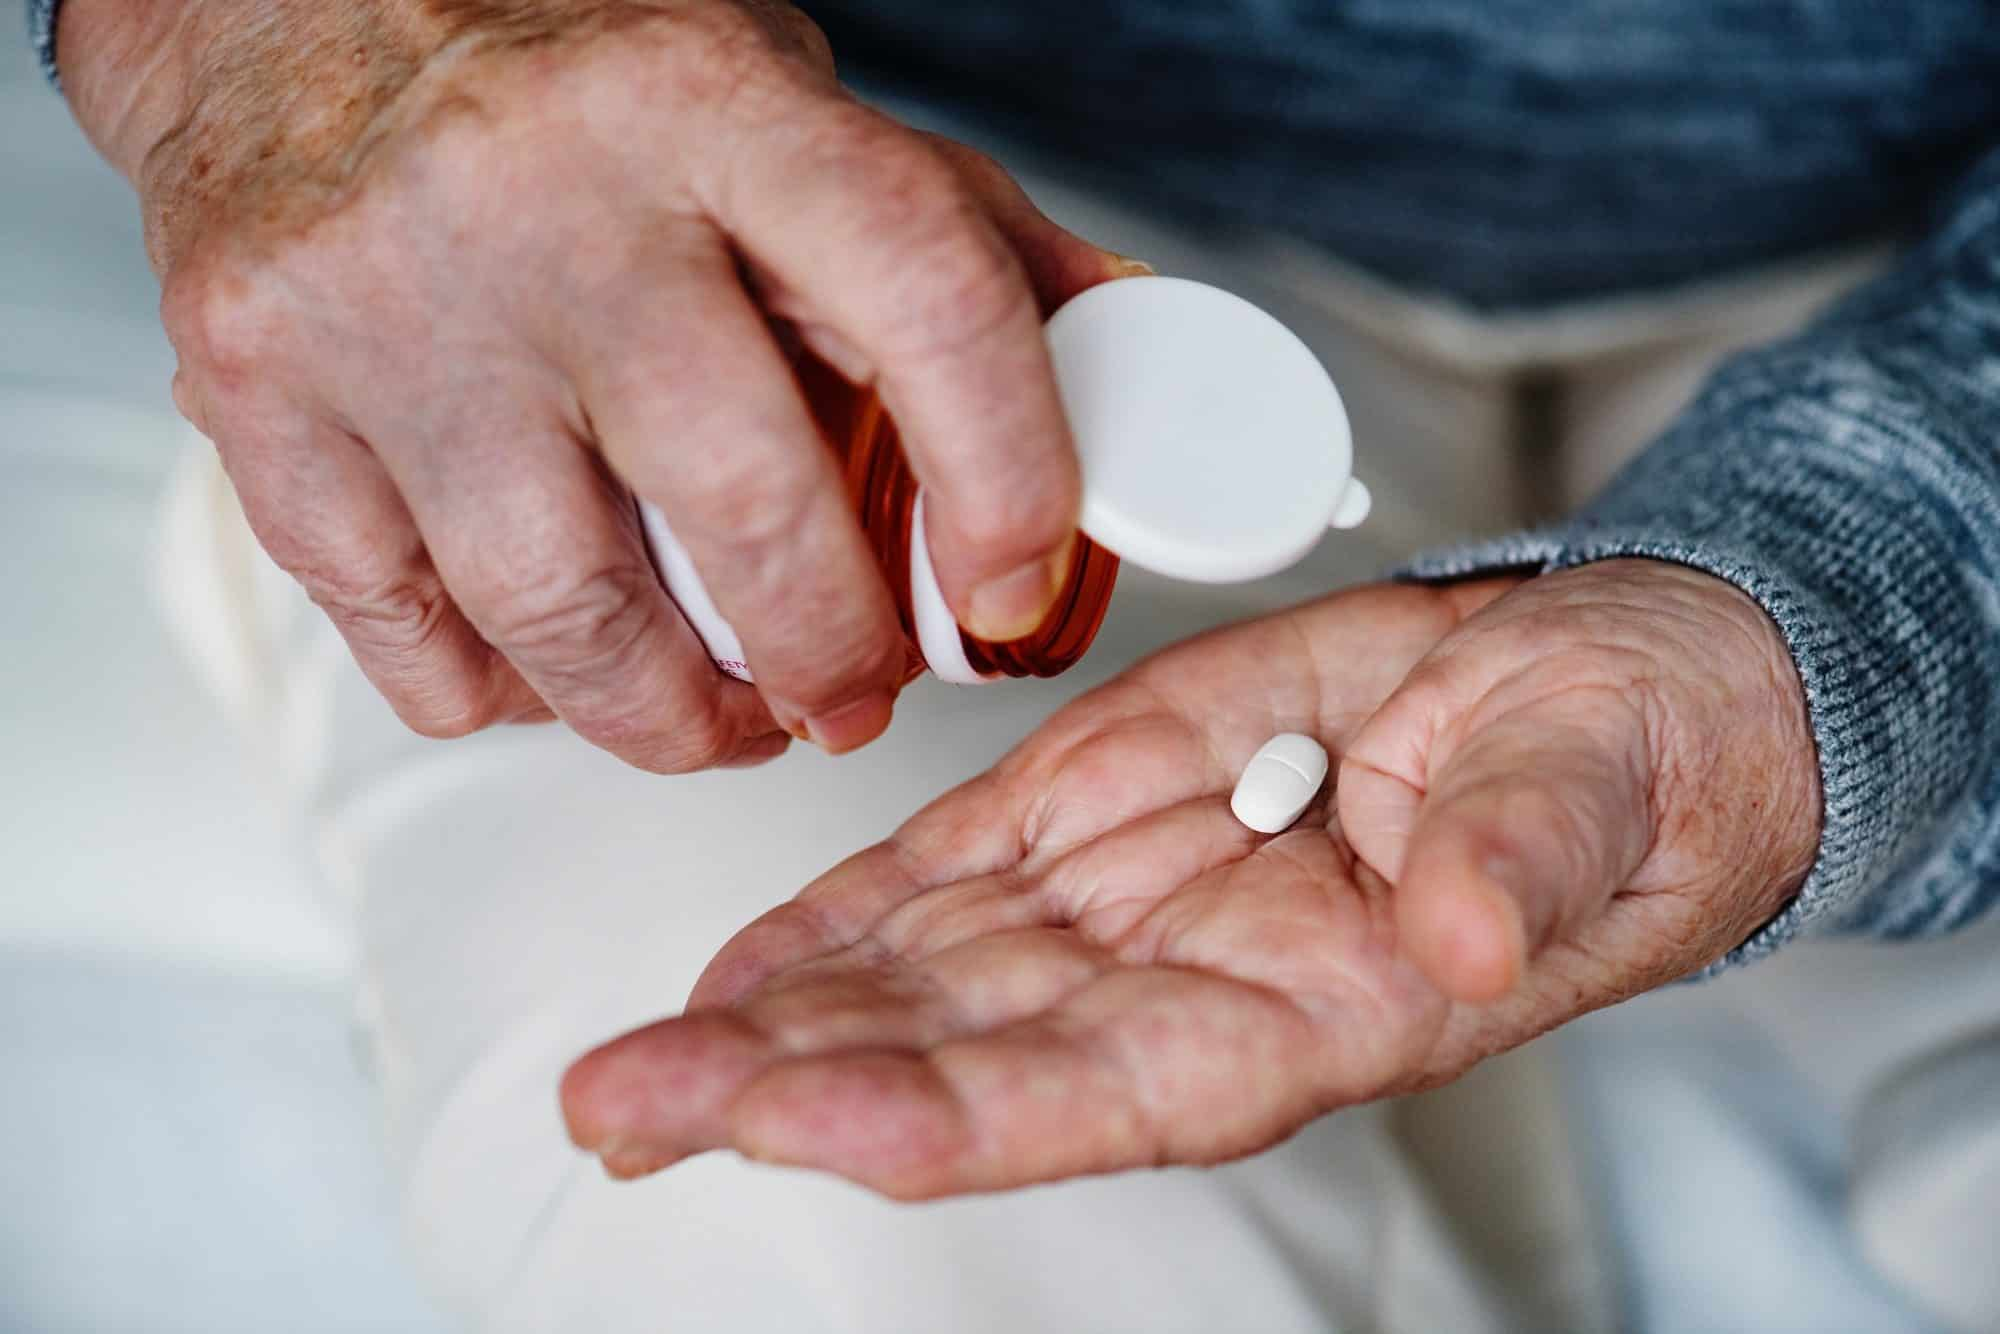 oxycontin opiate based painkiller